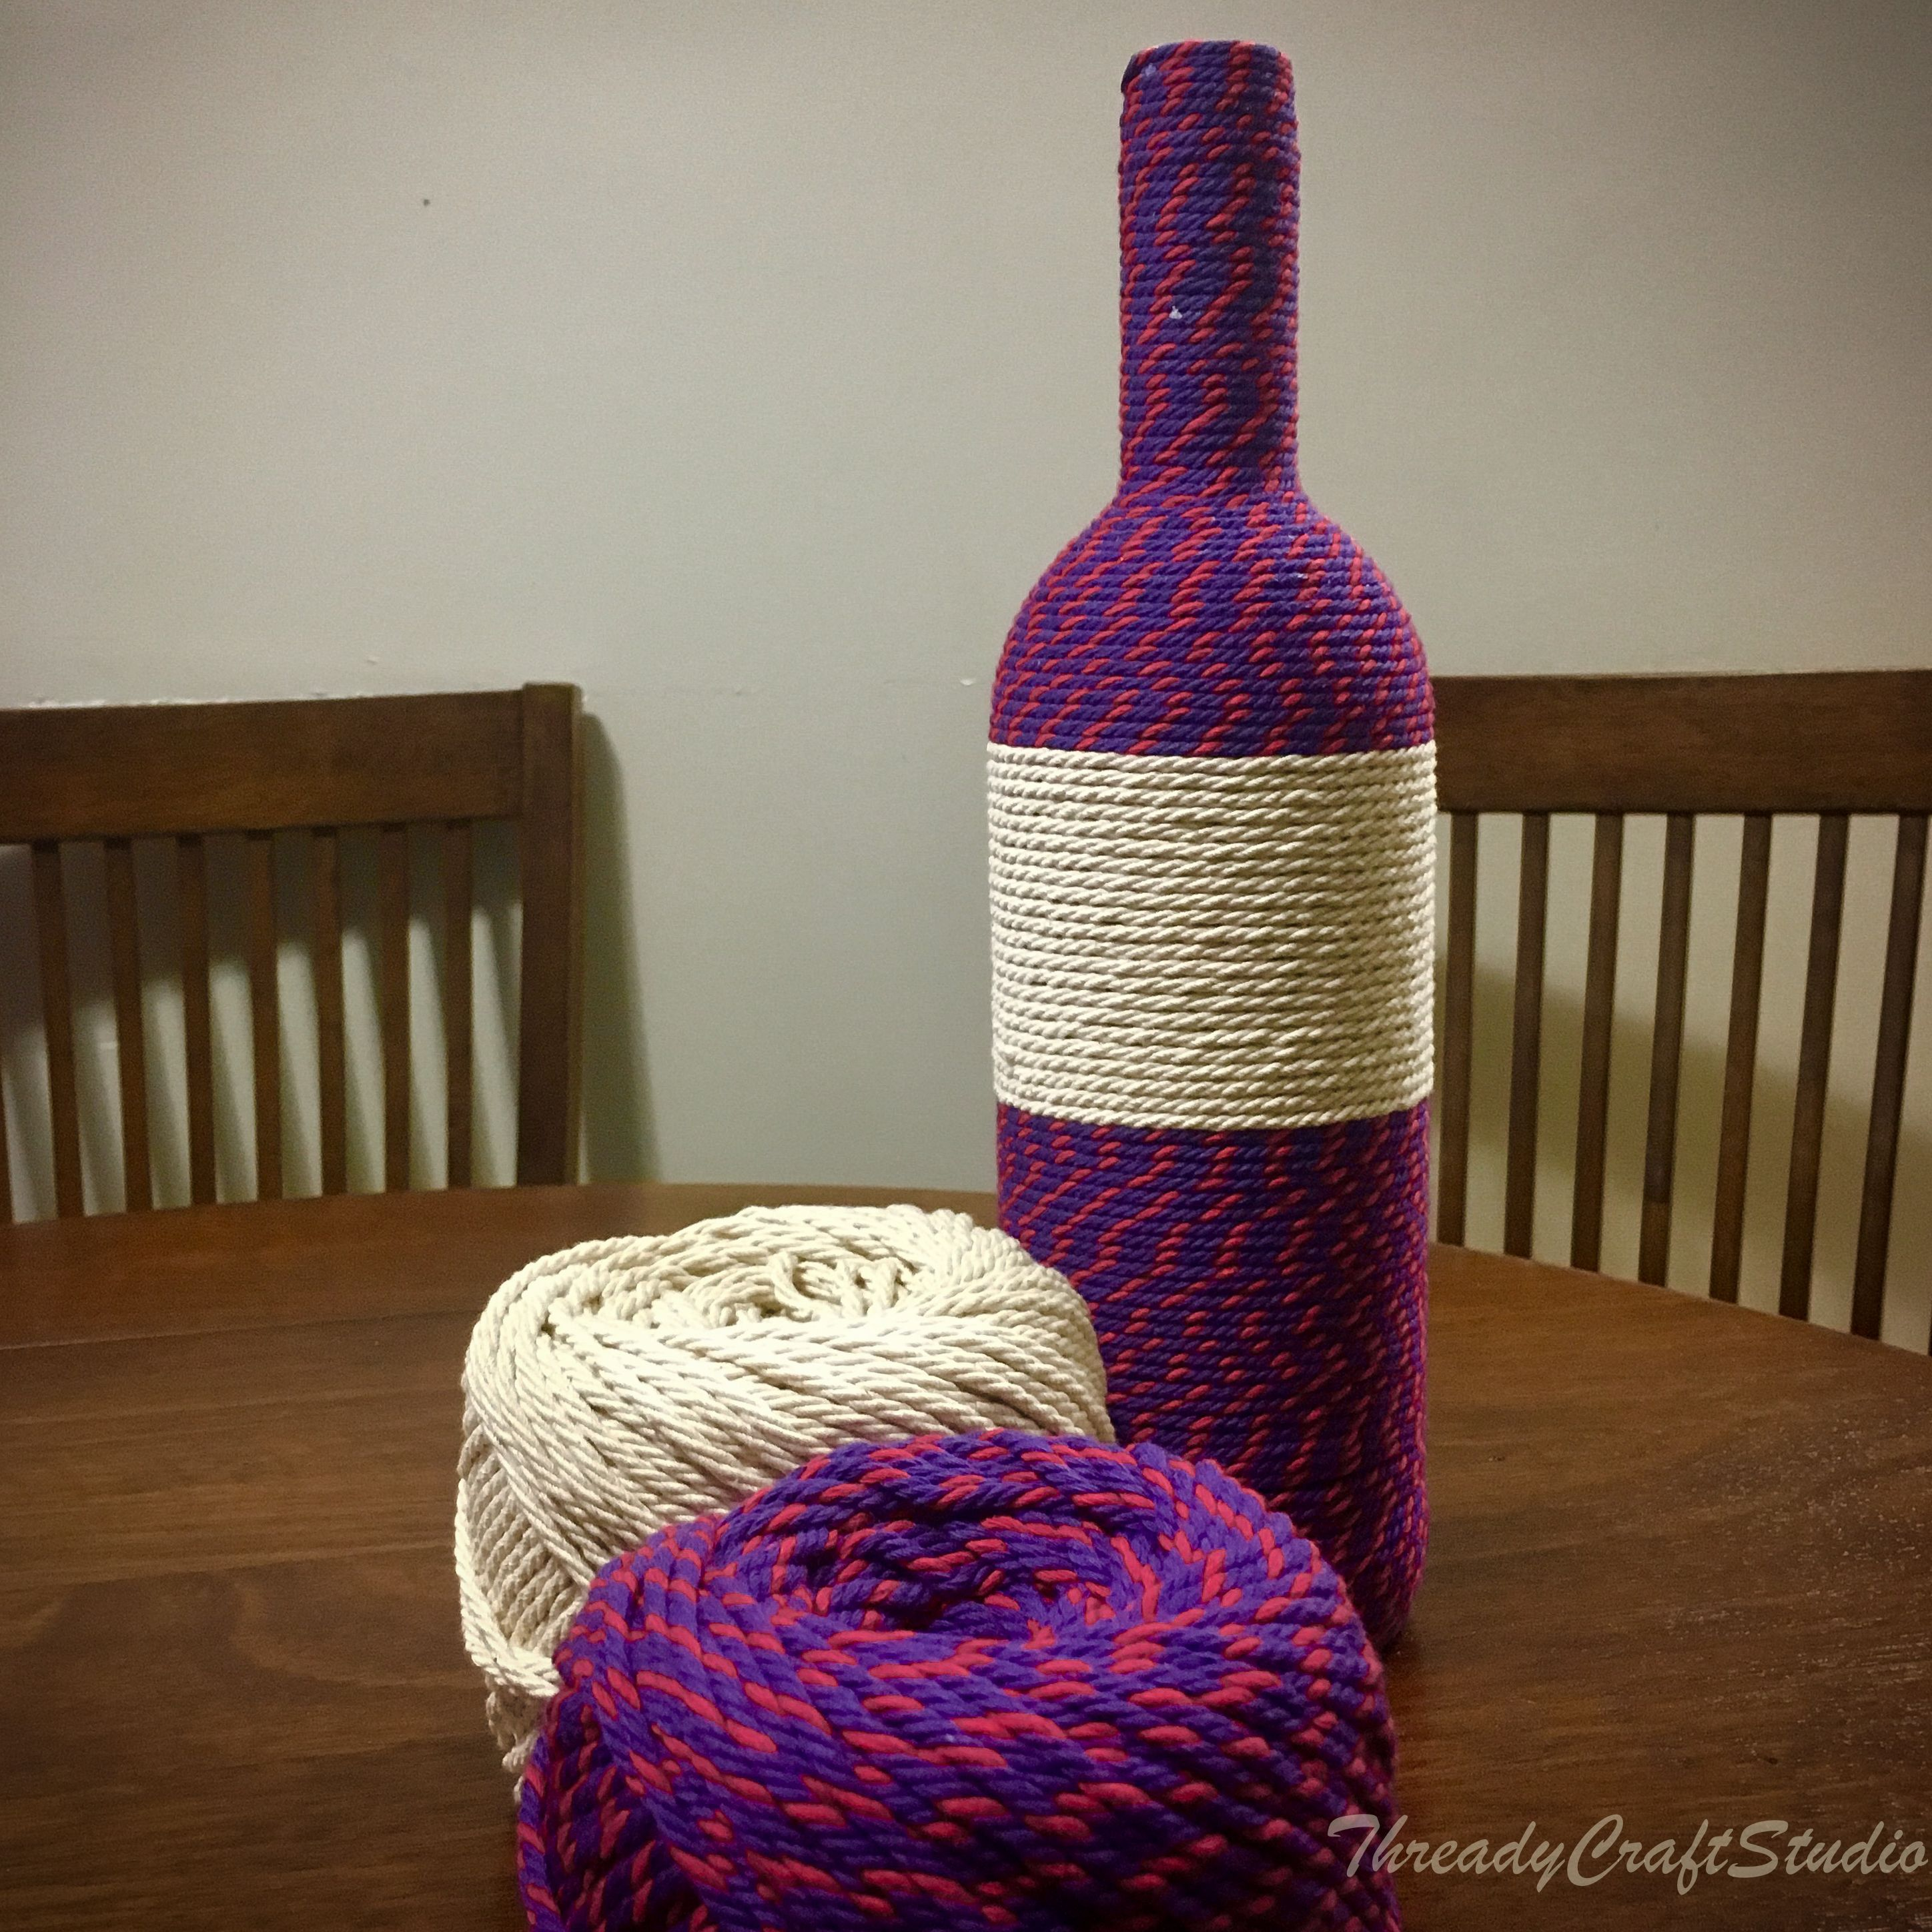 Upcycled Wine bottle for Home Decor using this beautiful